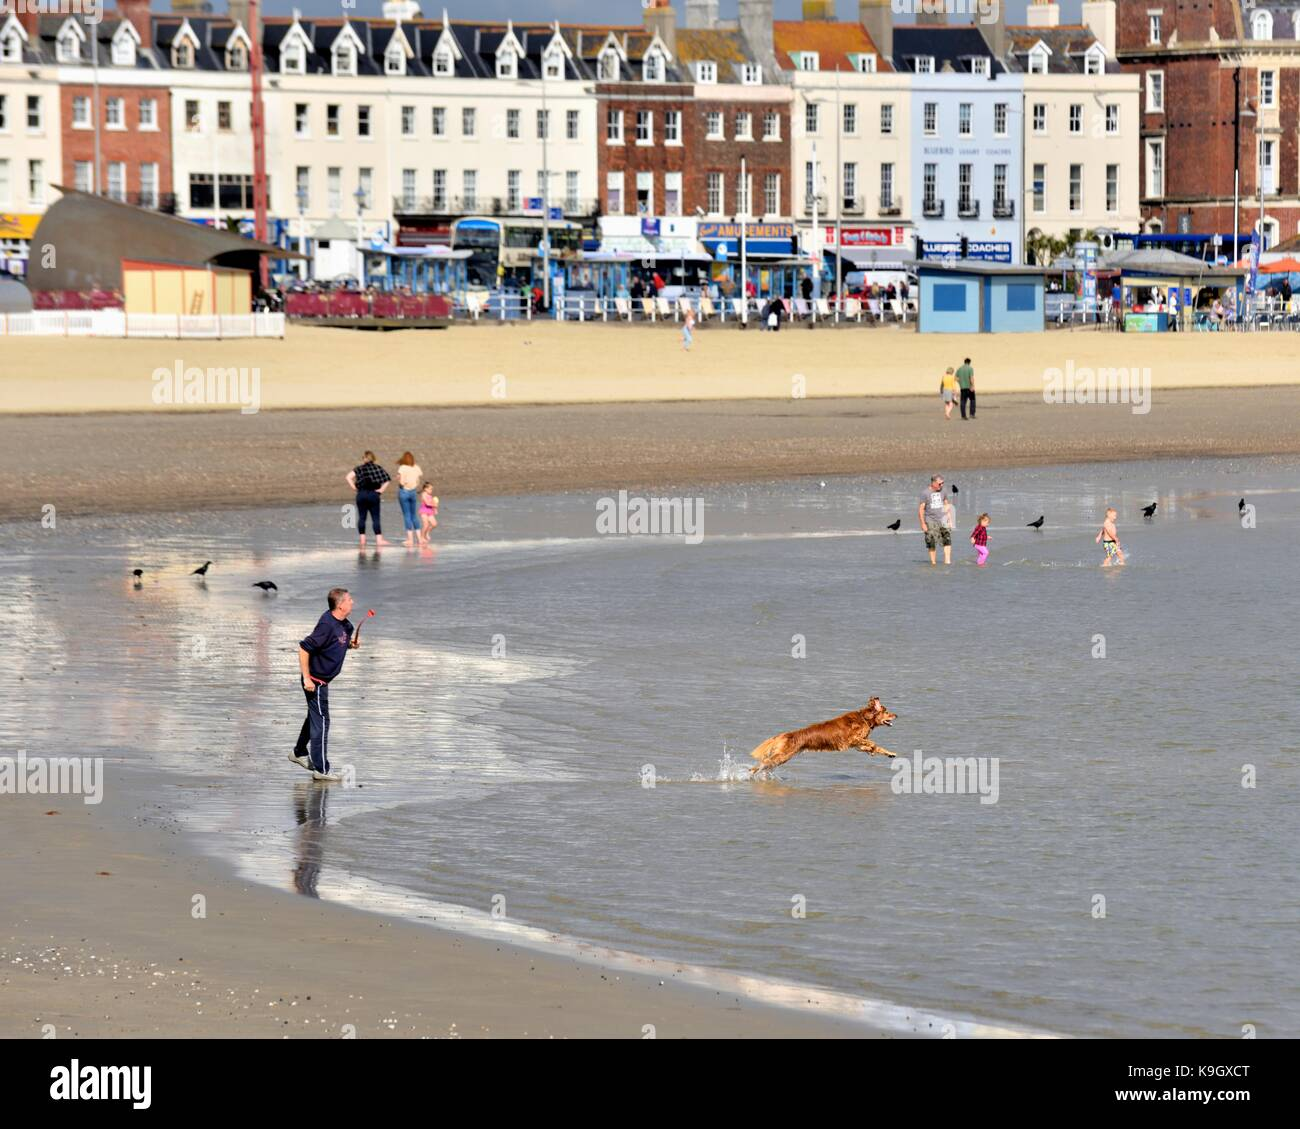 A dog leaping into the sea after a ball throwm by it's owner Weymouth beach Dorset England UK - Stock Image